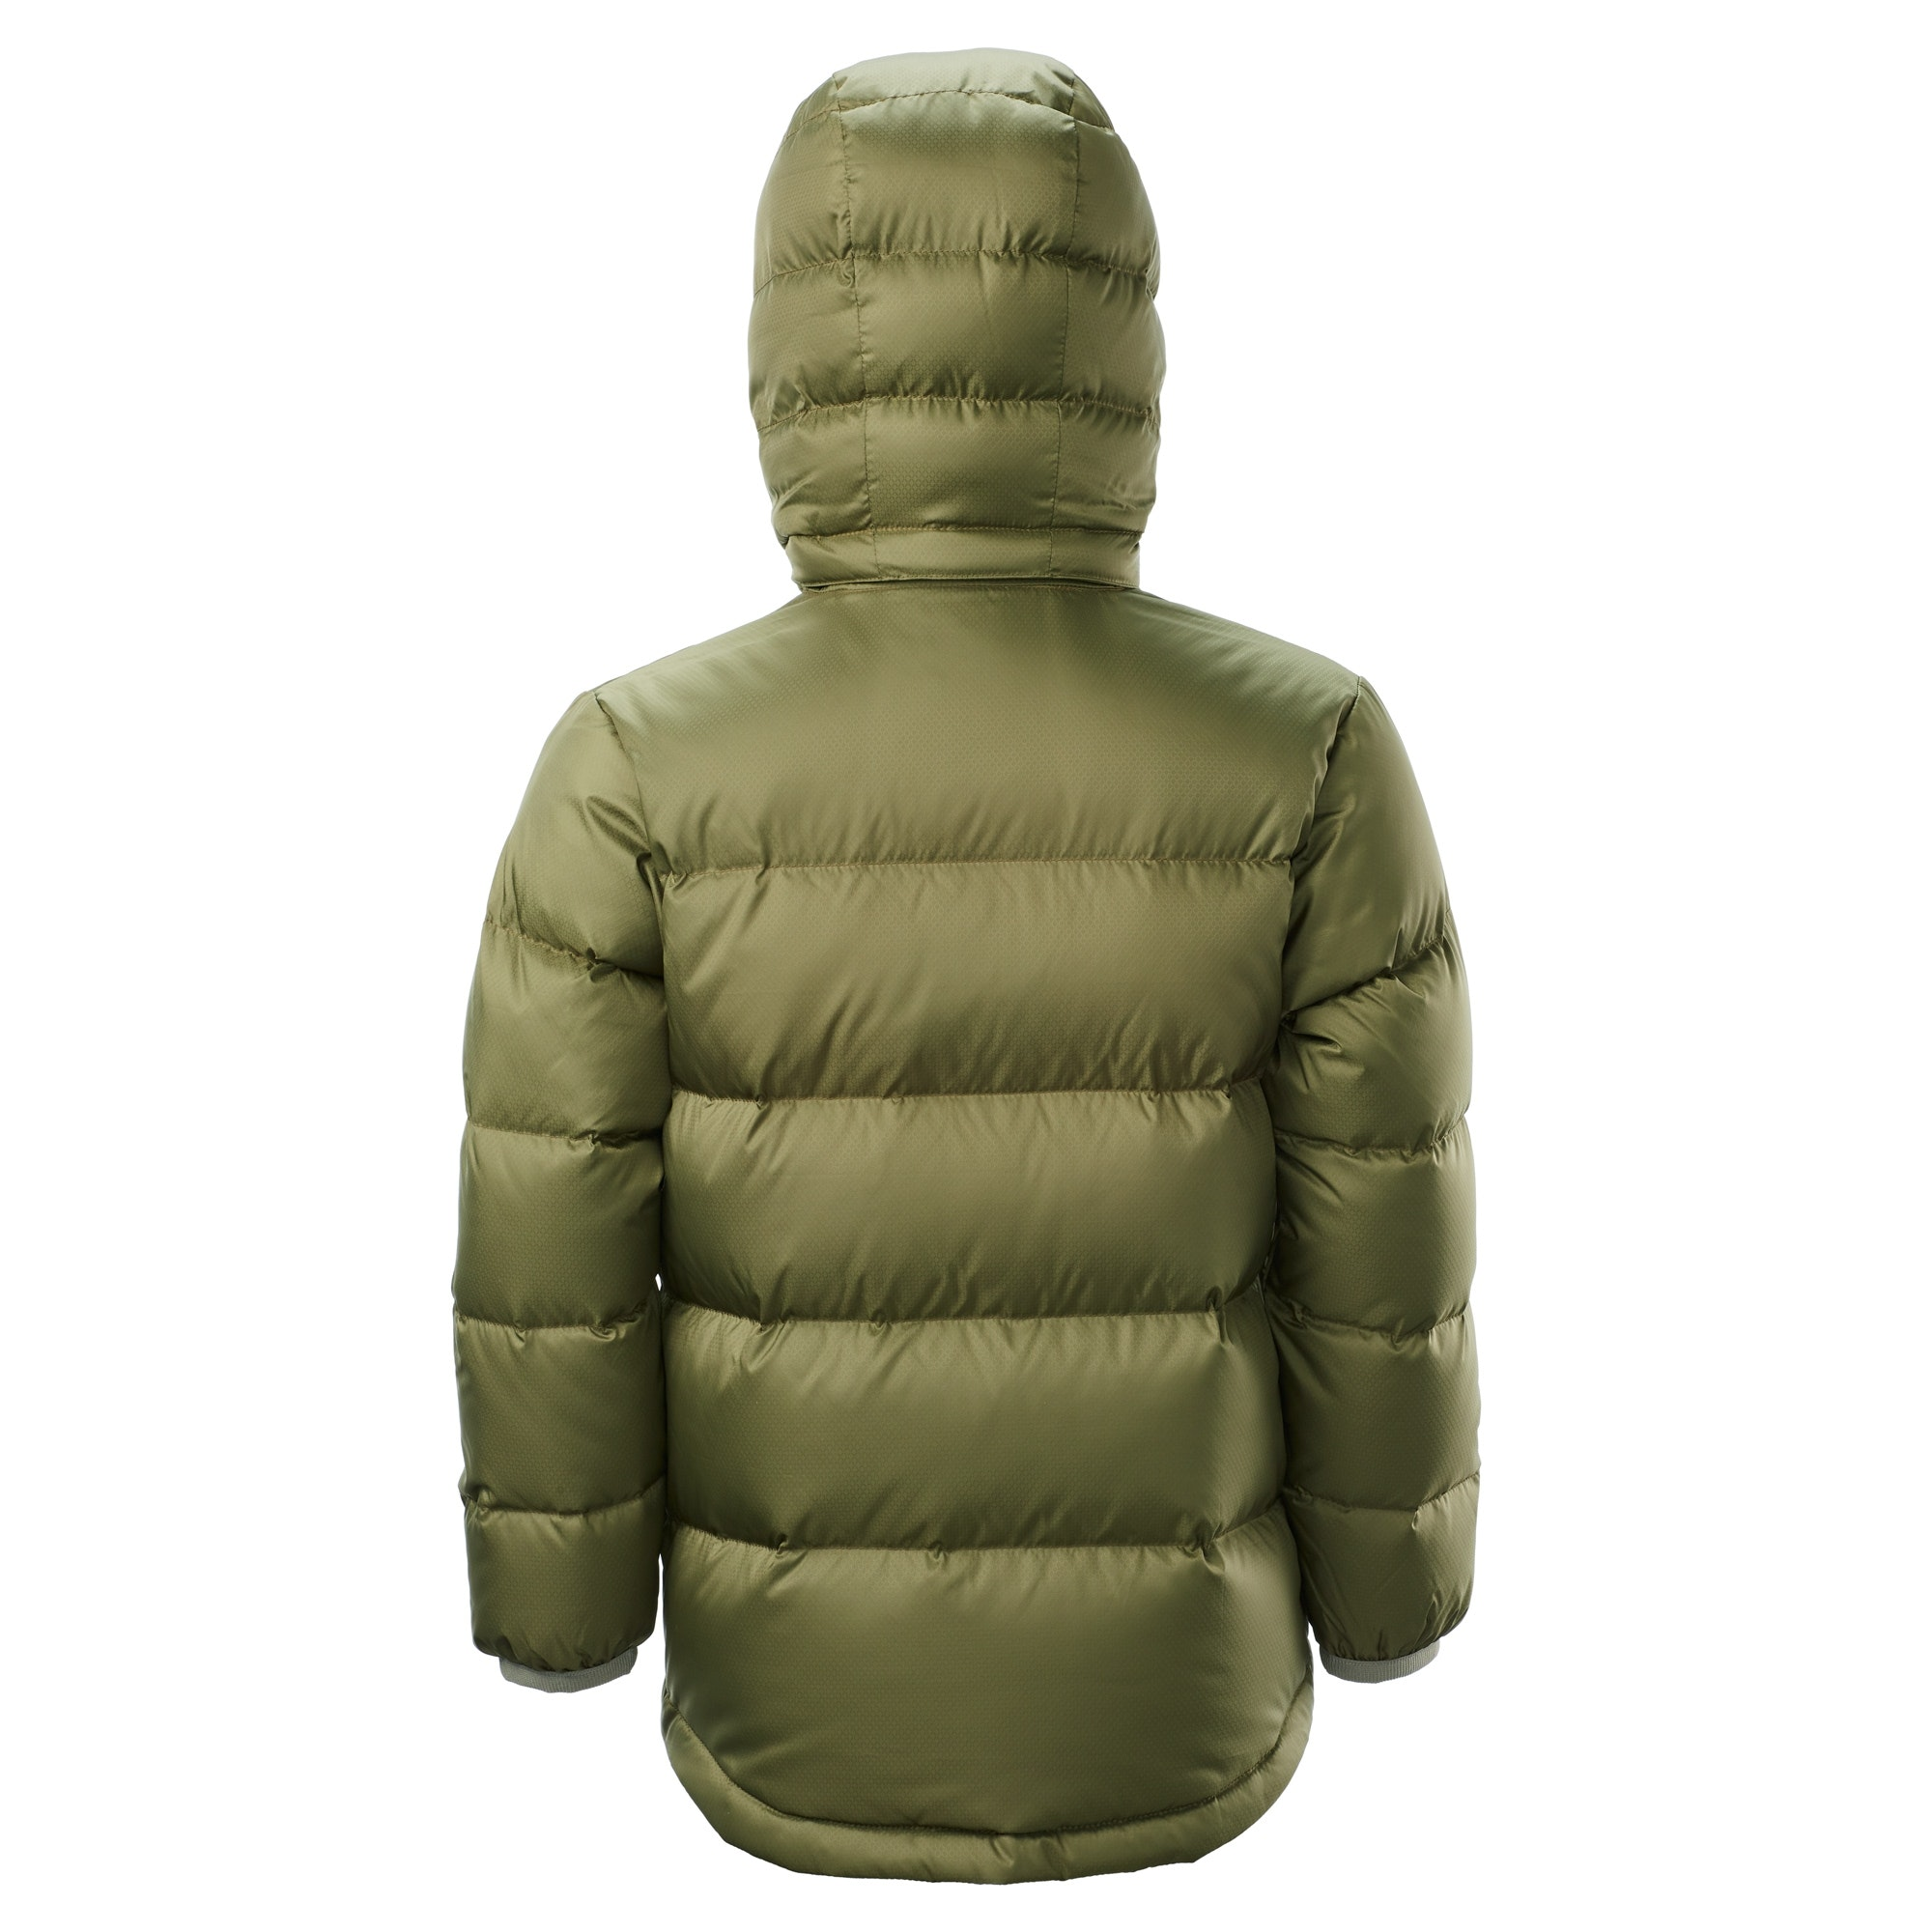 Kathmandu-Elcho-Kids-Boys-Girls-Hood-Warm-Winter-Outdoor-Duck-Down-Puffer-Jacket thumbnail 20